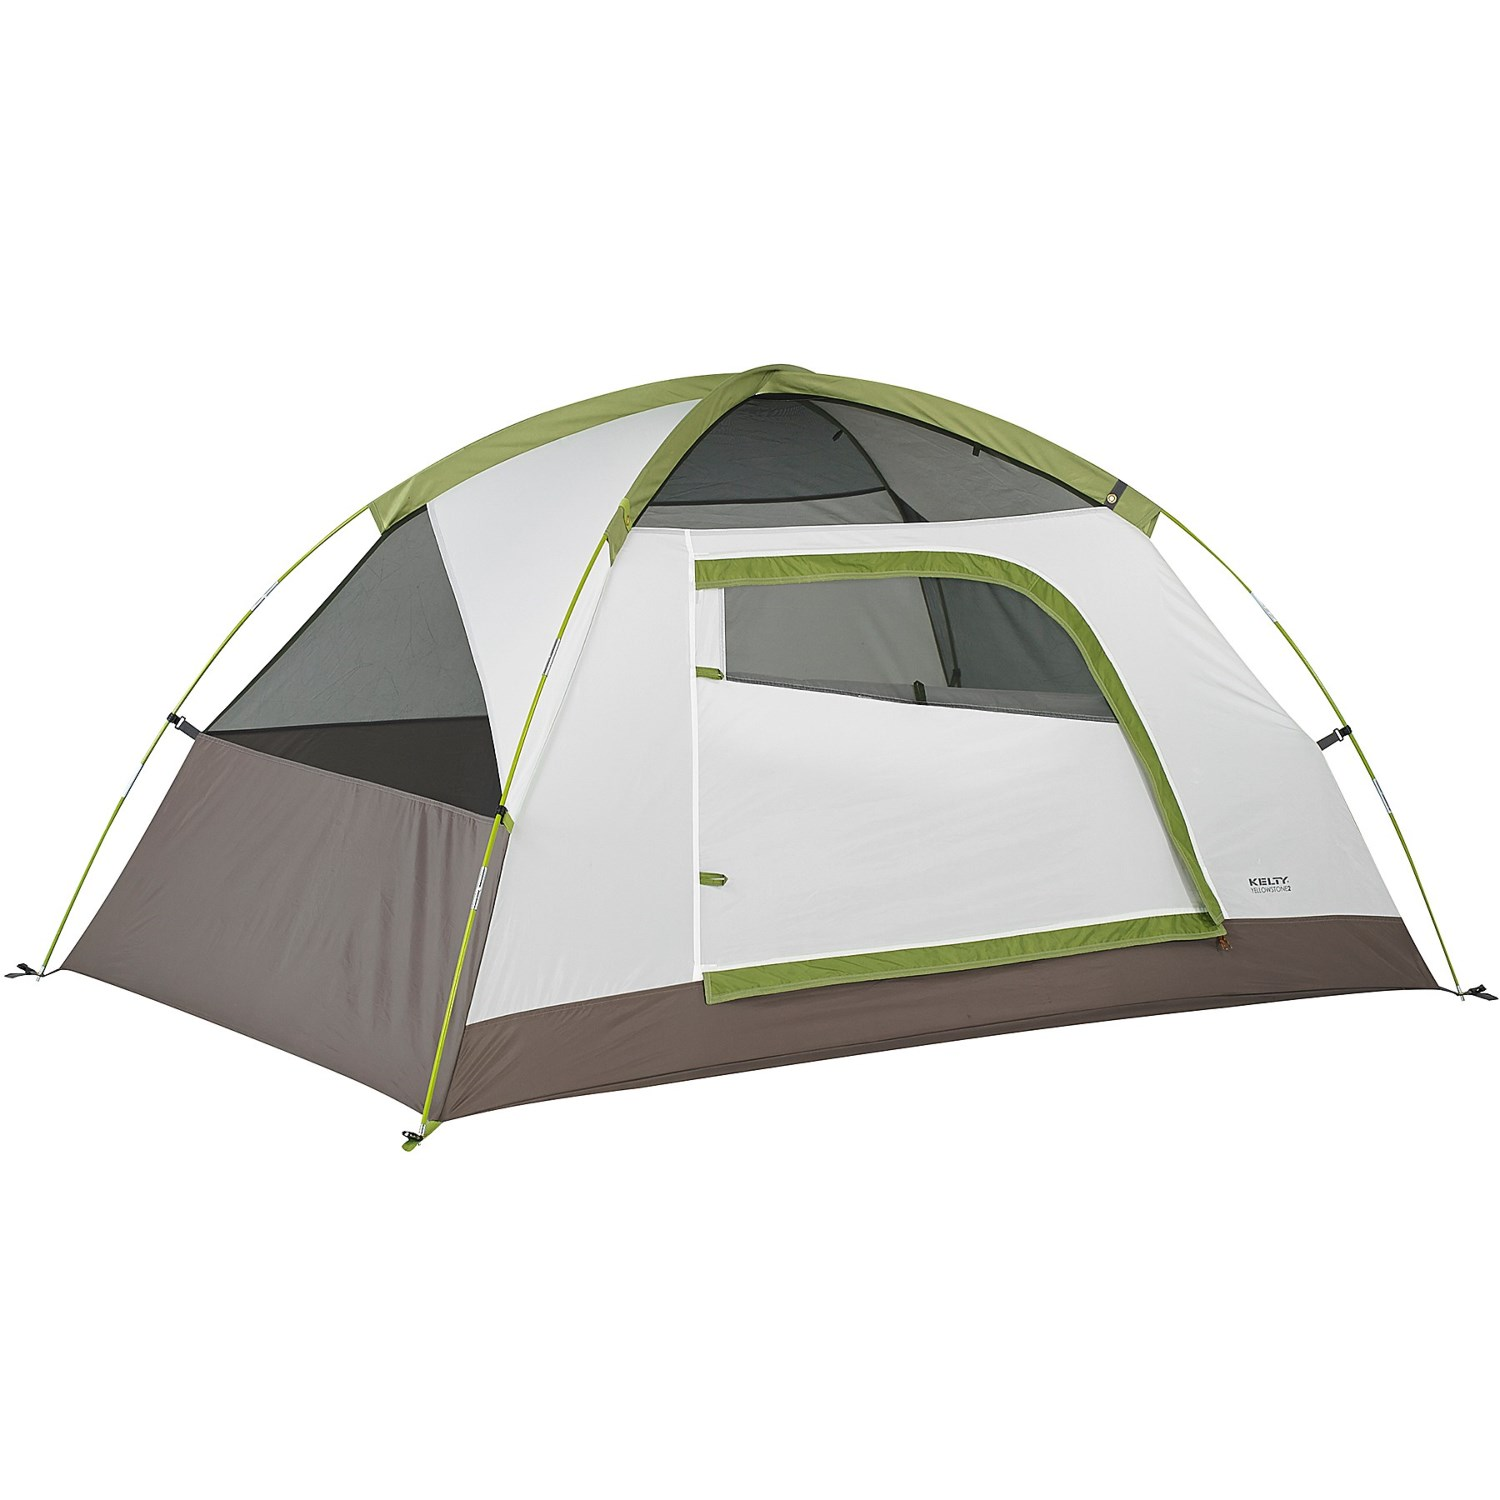 Two Person Tent : Kelty yellowstone tent person season save